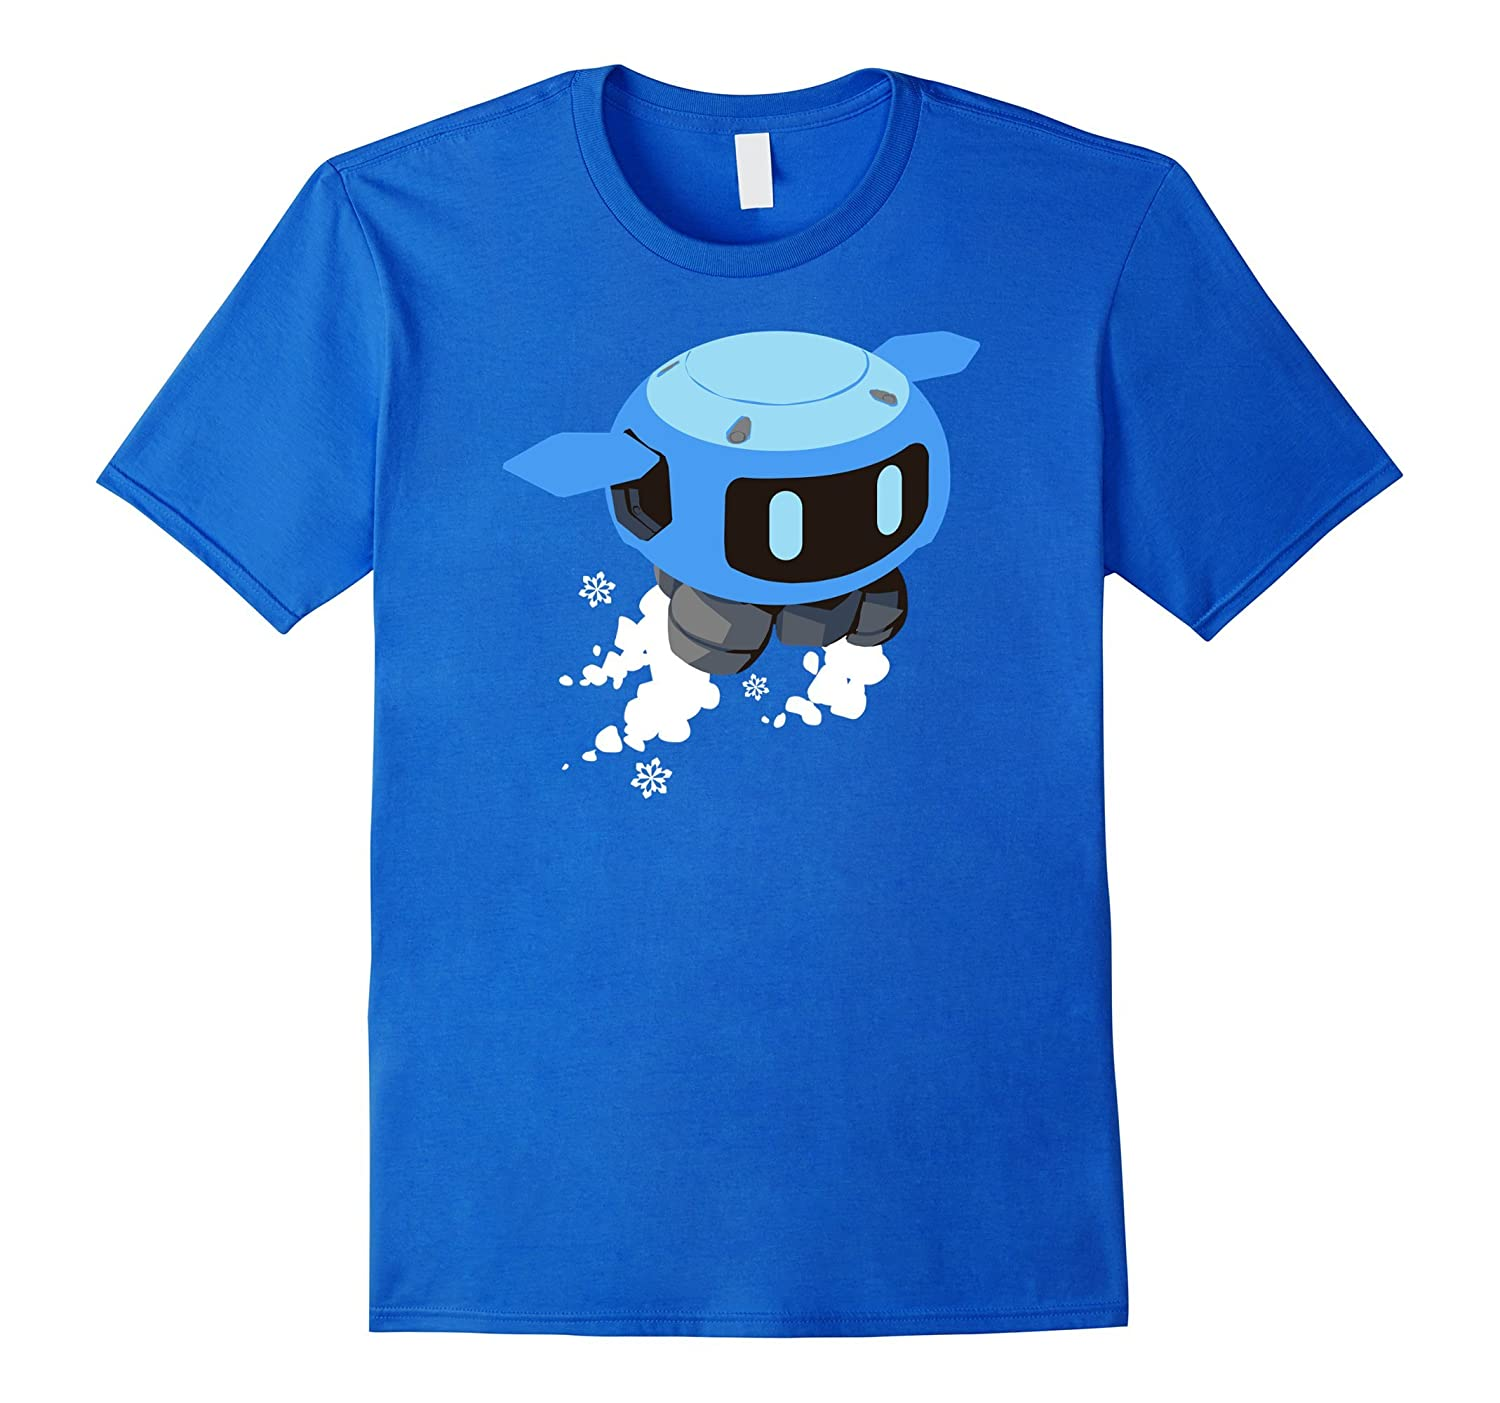 Overwatch Mei Snowball Spray Tee Shirt Goatstee